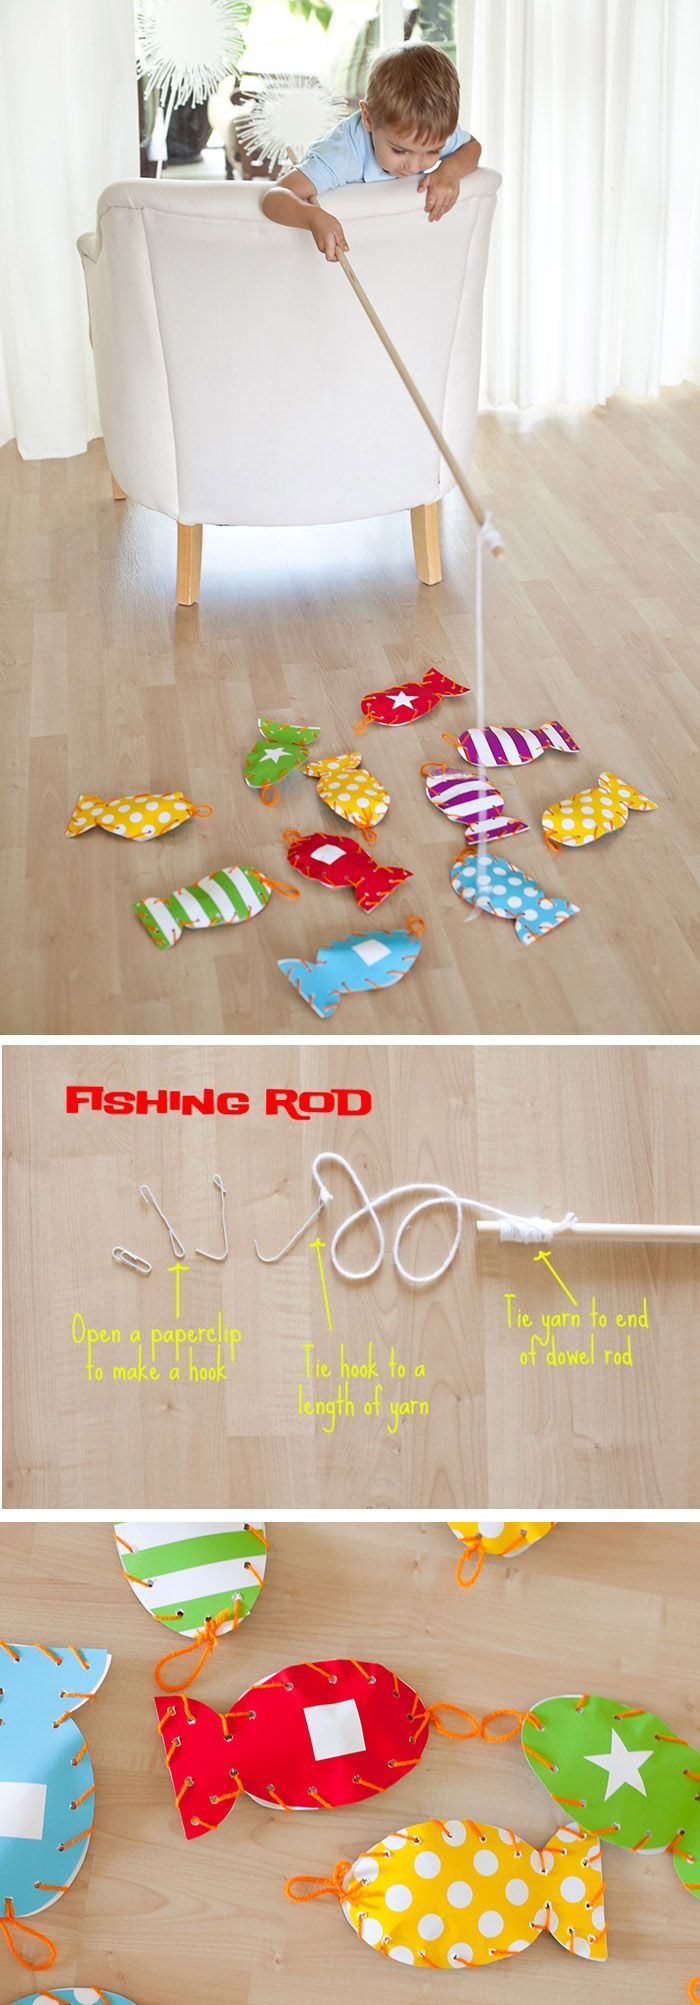 Gone Fishing - DIY fishing game for kids